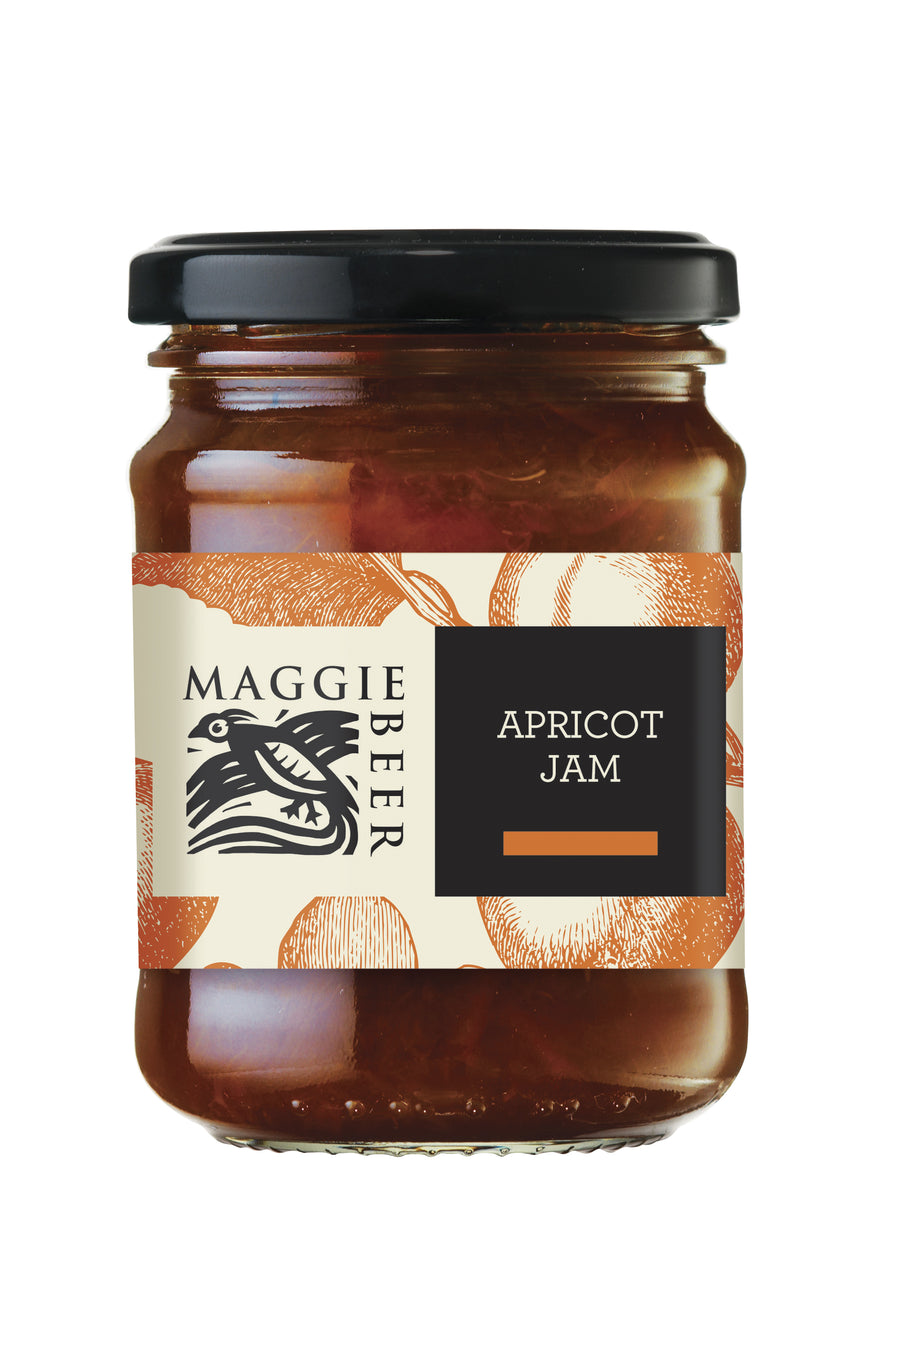 Maggie Beer Apricot Jam 6x285g